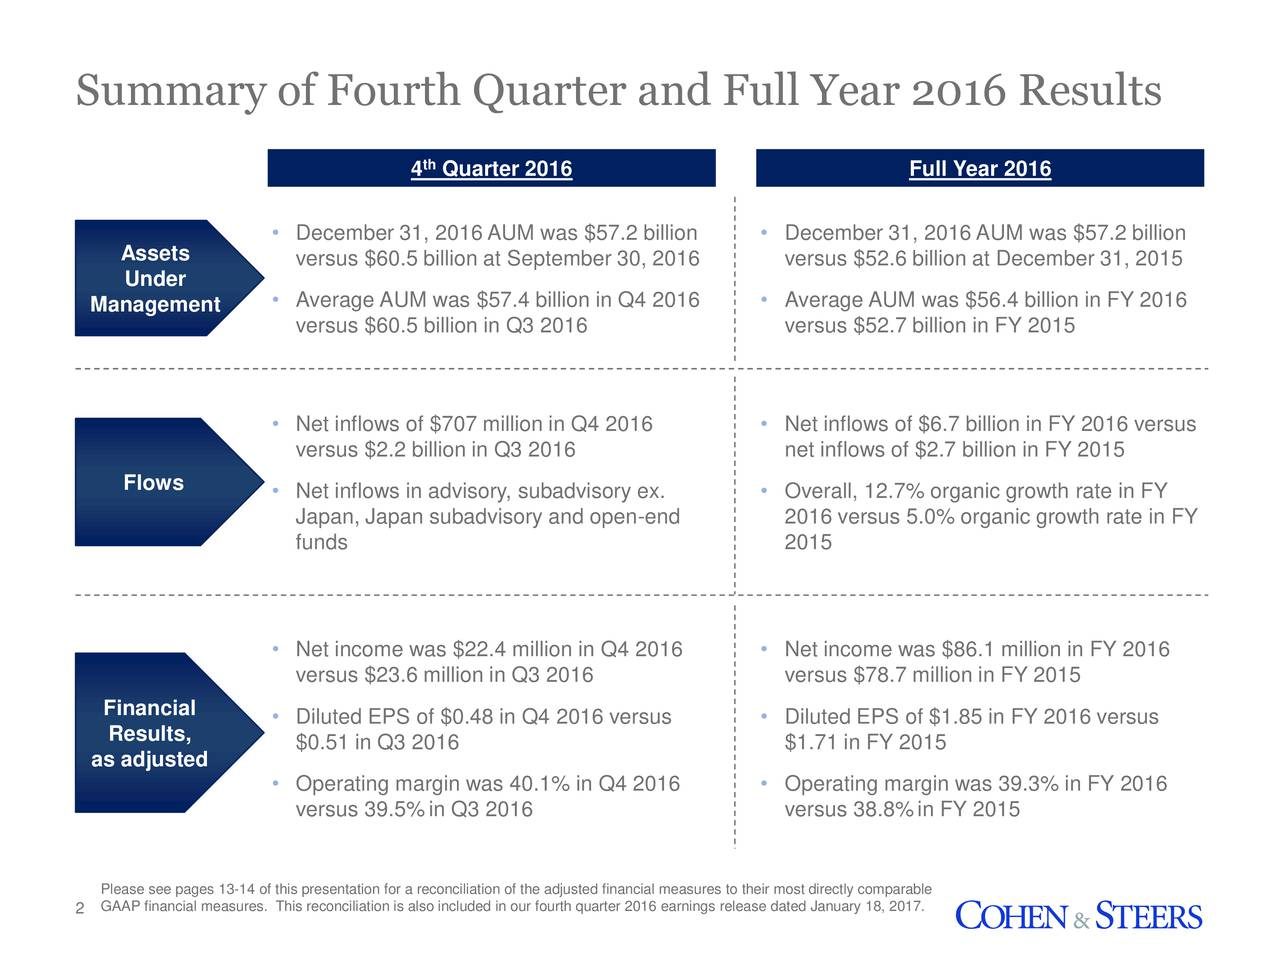 4 Quarter 2016 Full Year 2016 December 31, 2016 AUM was $57.2 billion  December 31, 2016 AUM was $57.2 billion Assets versus $60.5 billion at September 30, 2016 versus $52.6 billion at December 31, 2015 Under Average AUM was $57.4 billion in Q4 2016  Average AUM was $56.4 billion in FY 2016 Management versus $60.5 billion in Q3 2016 versus $52.7 billion in FY 2015 Net inflows of $707 million in Q4 2016  Net inflows of $6.7 billion in FY 2016 versus versus $2.2 billion in Q3 2016 net inflows of $2.7 billion in FY 2015 Flows  Net inflows in advisory, subadvisory ex.  Overall, 12.7% organic growth rate in FY Japan, Japan subadvisory and open-end 2016 versus 5.0% organic growth rate in FY funds 2015 Net income was $22.4 million in Q4 2016  Net income was $86.1 million in FY 2016 versus $23.6 million in Q3 2016 versus $78.7 million in FY 2015 Financial  Diluted EPS of $0.48 in Q4 2016 versus  Diluted EPS of $1.85 in FY 2016 versus Results, $0.51 in Q3 2016 $1.71 in FY 2015 as adjusted Operating margin was 40.1% in Q4 2016  Operating margin was 39.3% in FY 2016 versus 39.5%in Q3 2016 versus 38.8%in FY 2015 Please see pages 13-14 of this presentation for a reconciliation of the adjusted financial measures to their most directly comparable 2 GAAP financial measures. This reconciliation is also included in our fourth quarter 2016 earnings release dated January 18, 2017.